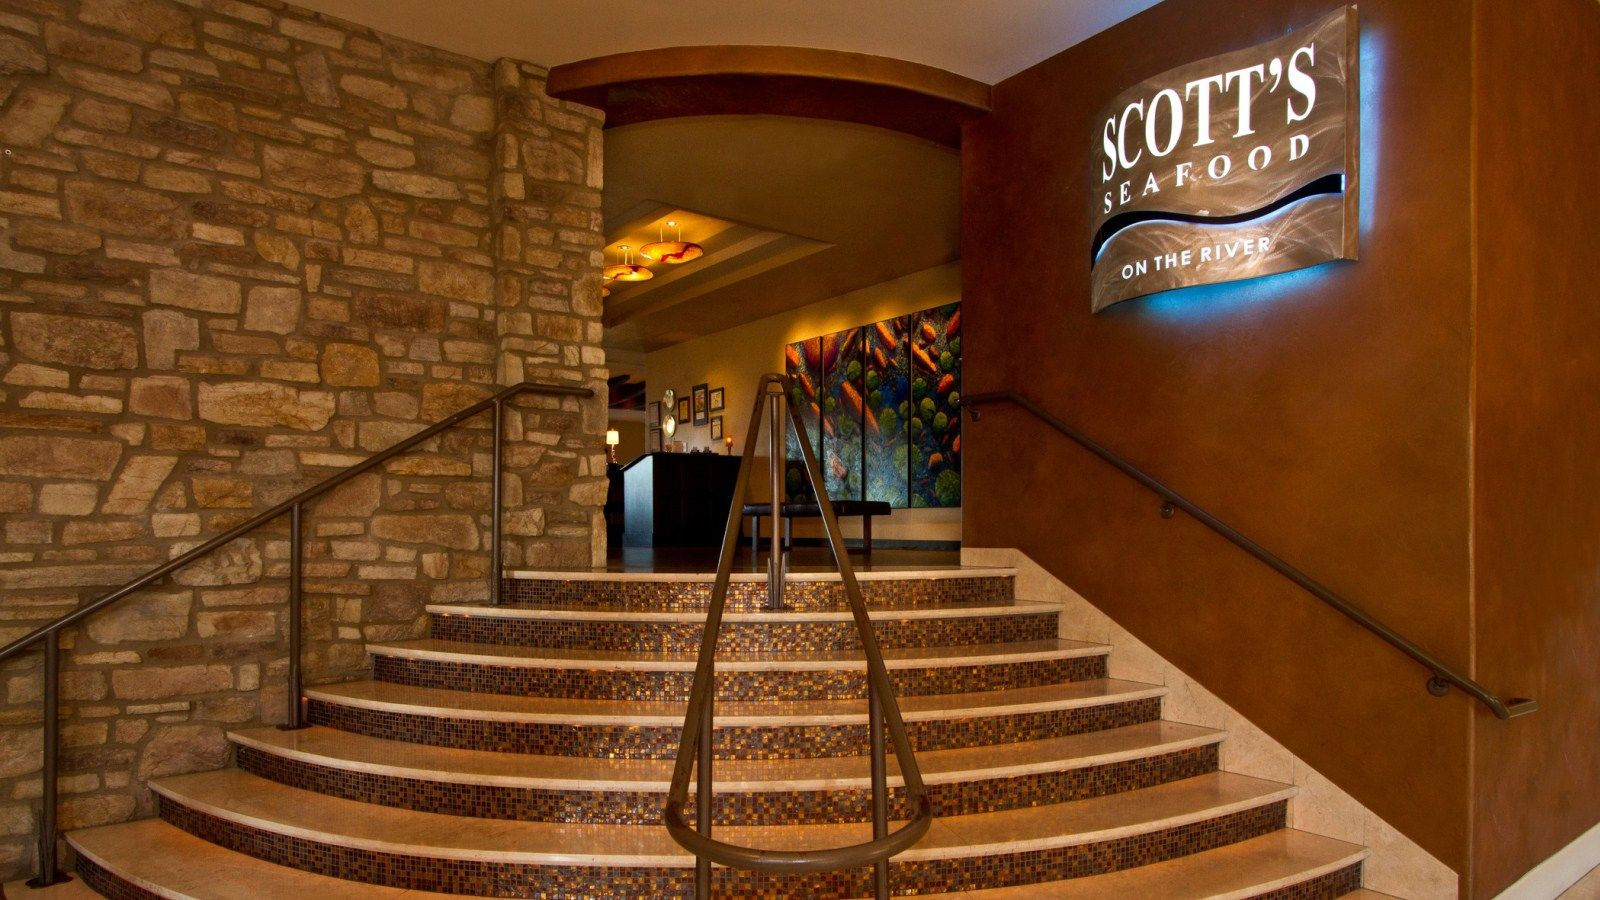 Sacramento River Restaurant - Scott's Seafood on the River